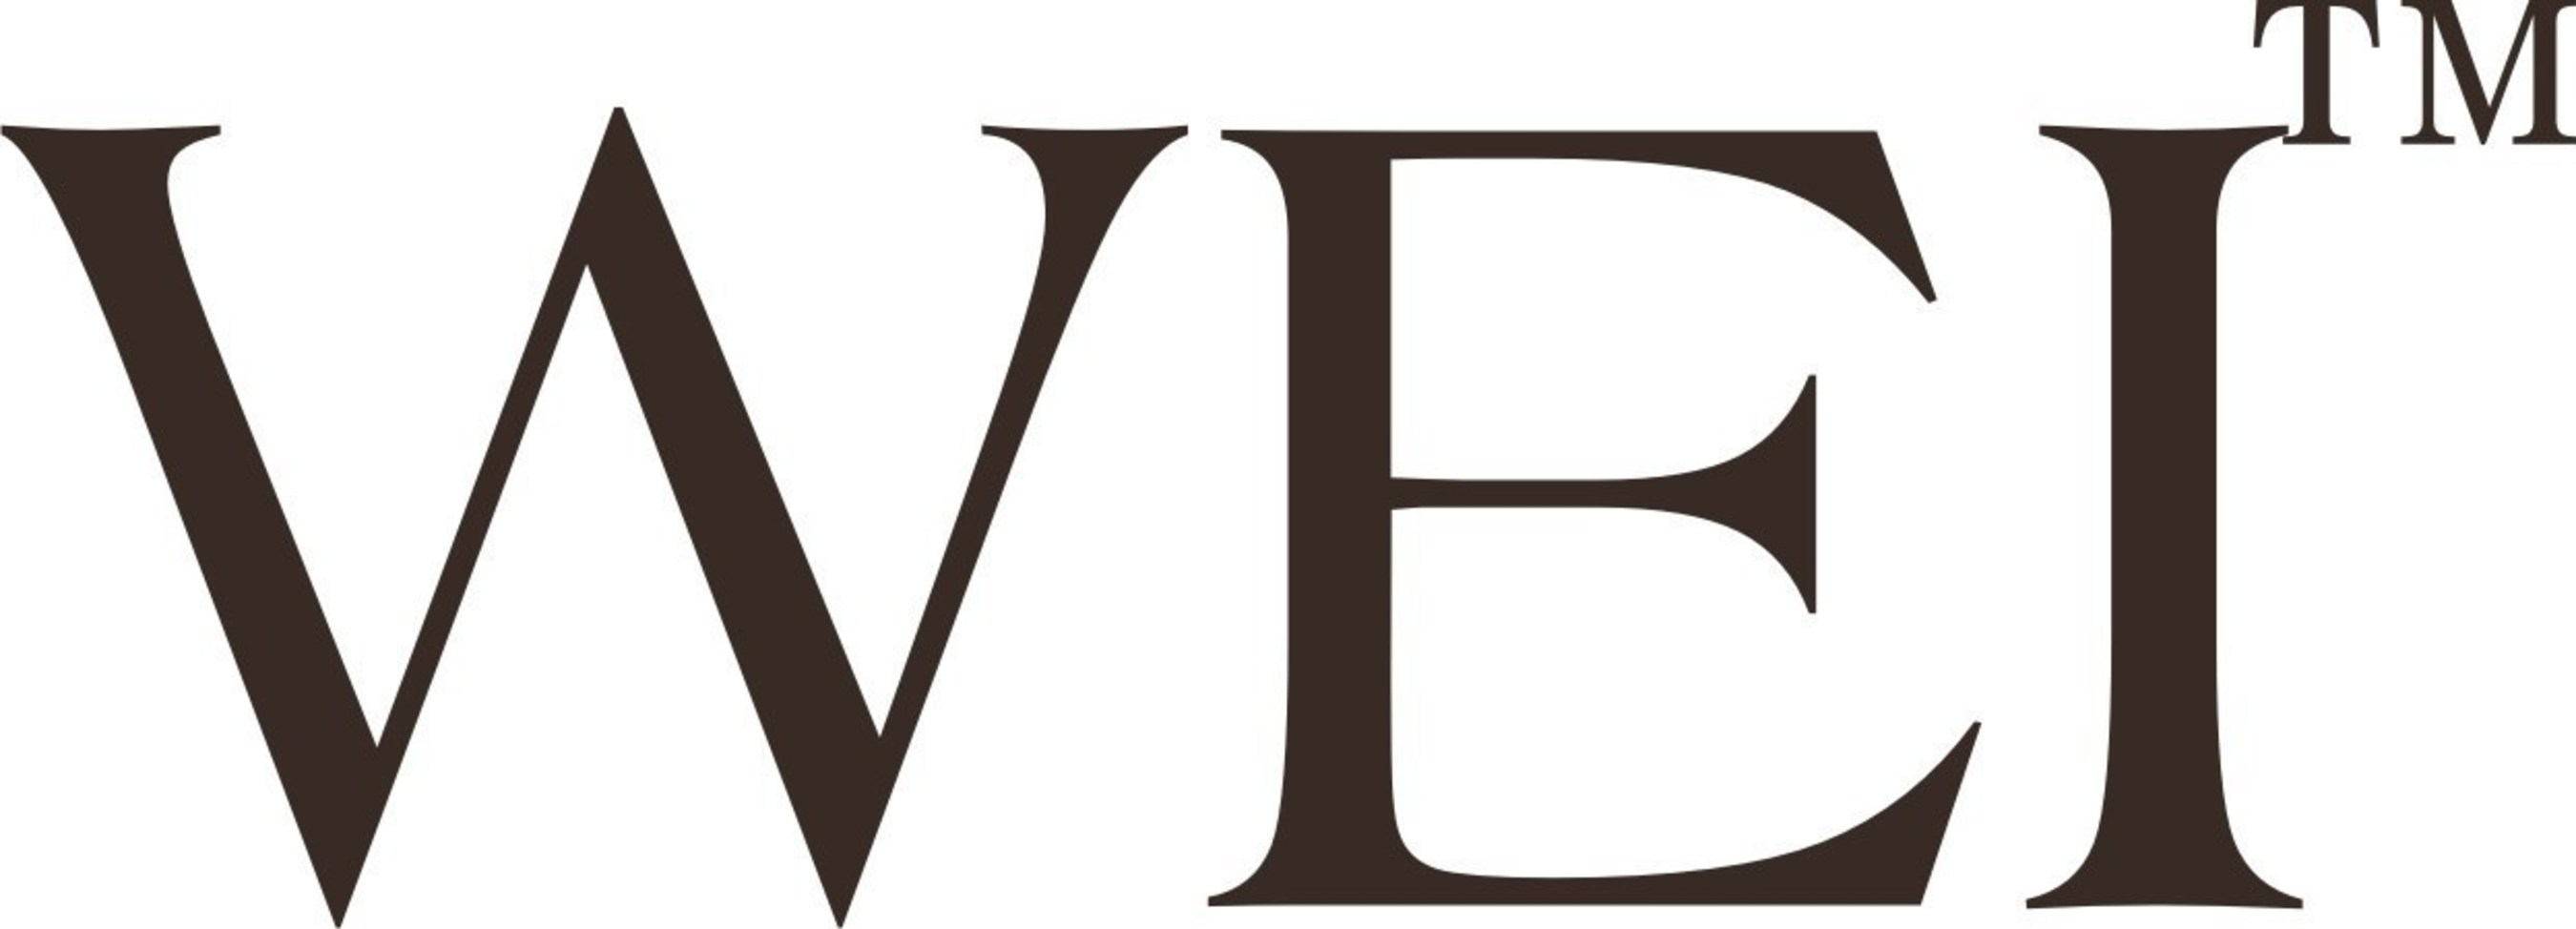 Prestige Traditional Chinese Medicine Brand, WEI Beauty, Launches New Mobile-Friendly Website: Weibeauty.com